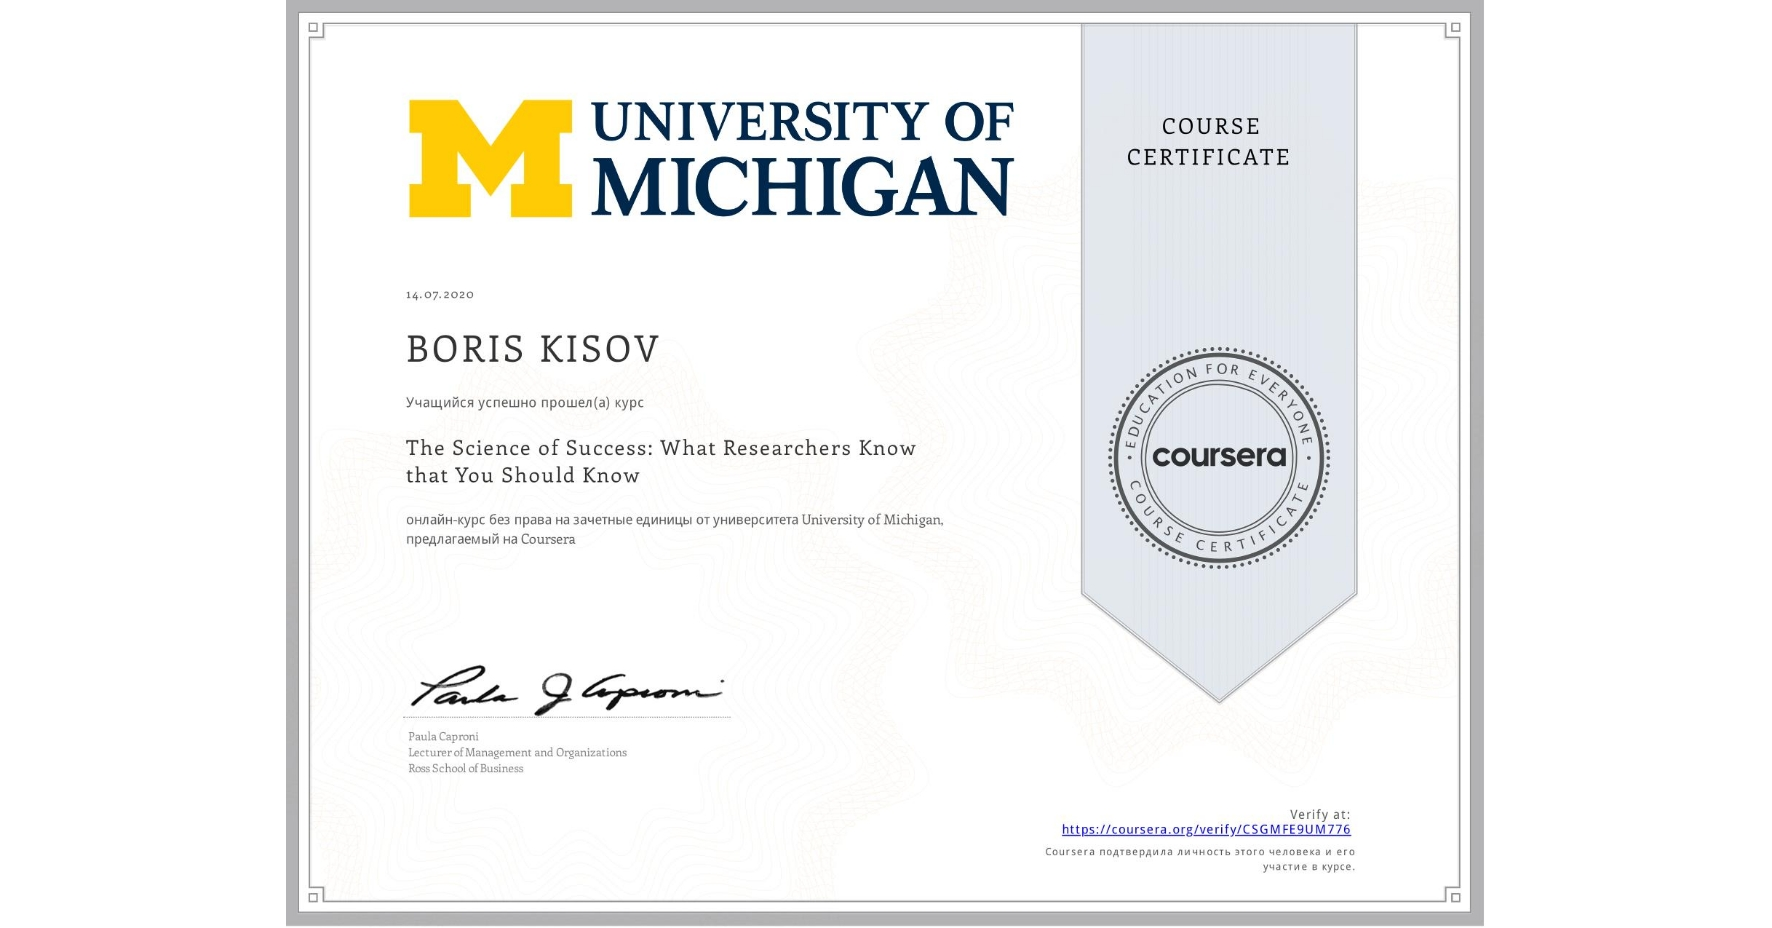 View certificate for BORIS KISOV, The Science of Success: What Researchers Know that You Should Know, an online non-credit course authorized by University of Michigan and offered through Coursera